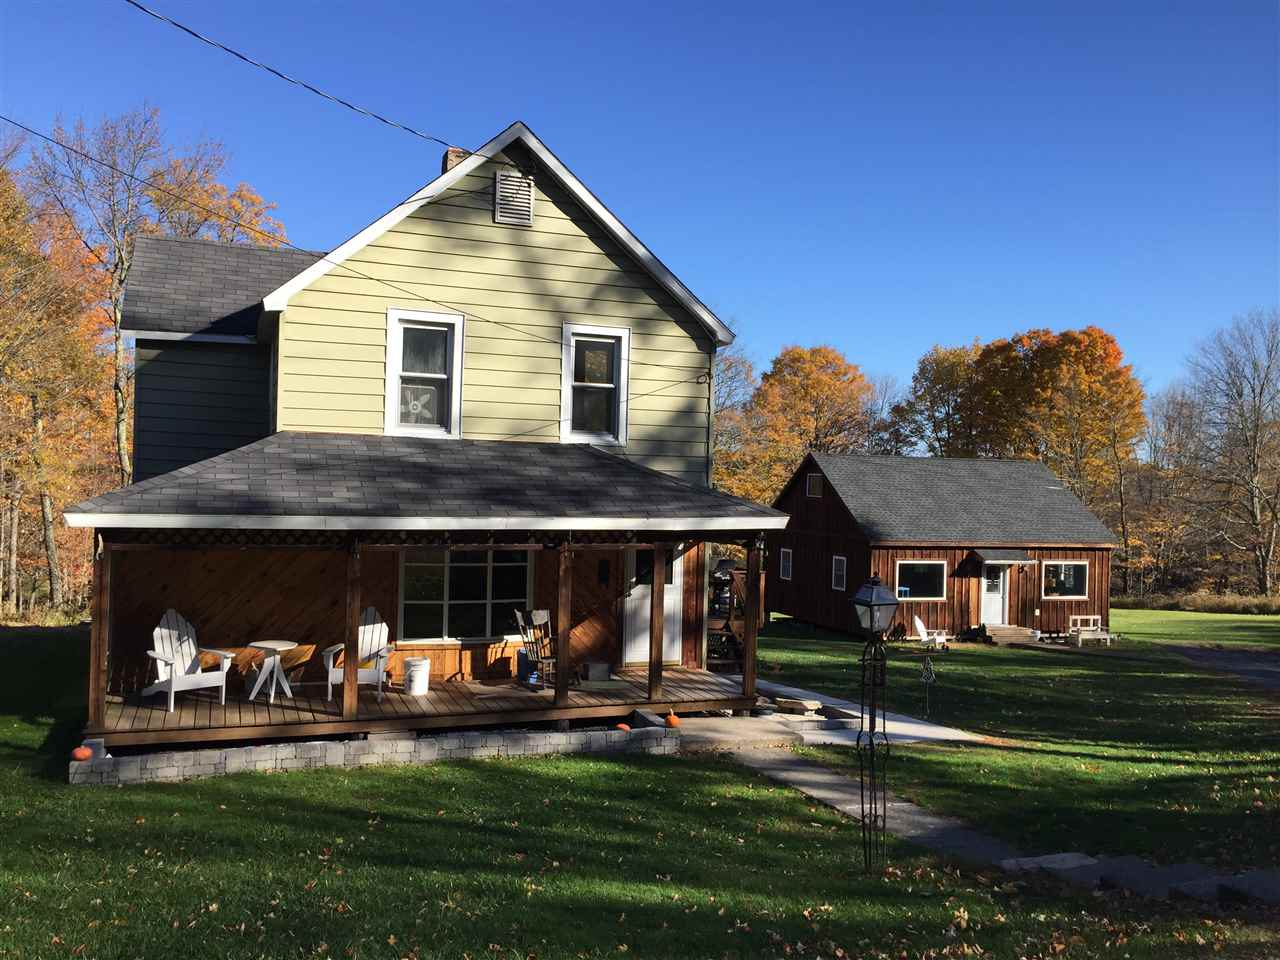 Image of Residential for Sale near Monticello, New York, in Sullivan county: 5.74 acres